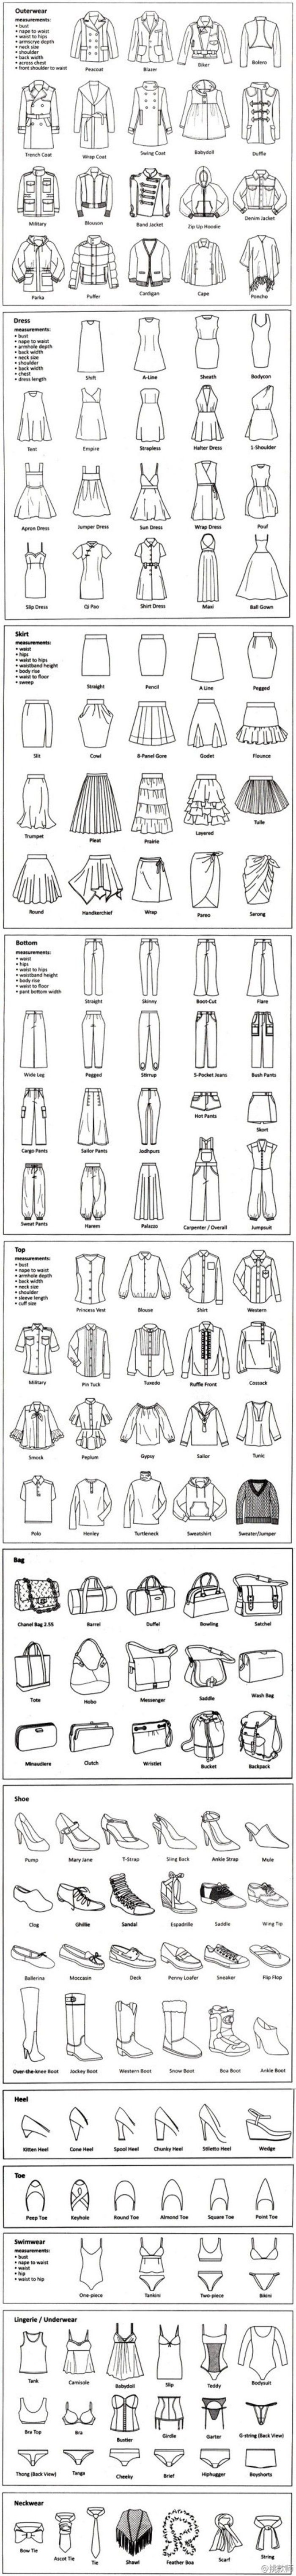 Categories of different clothing- including outerwear, pants, tops, underwear, shoes, and accessories